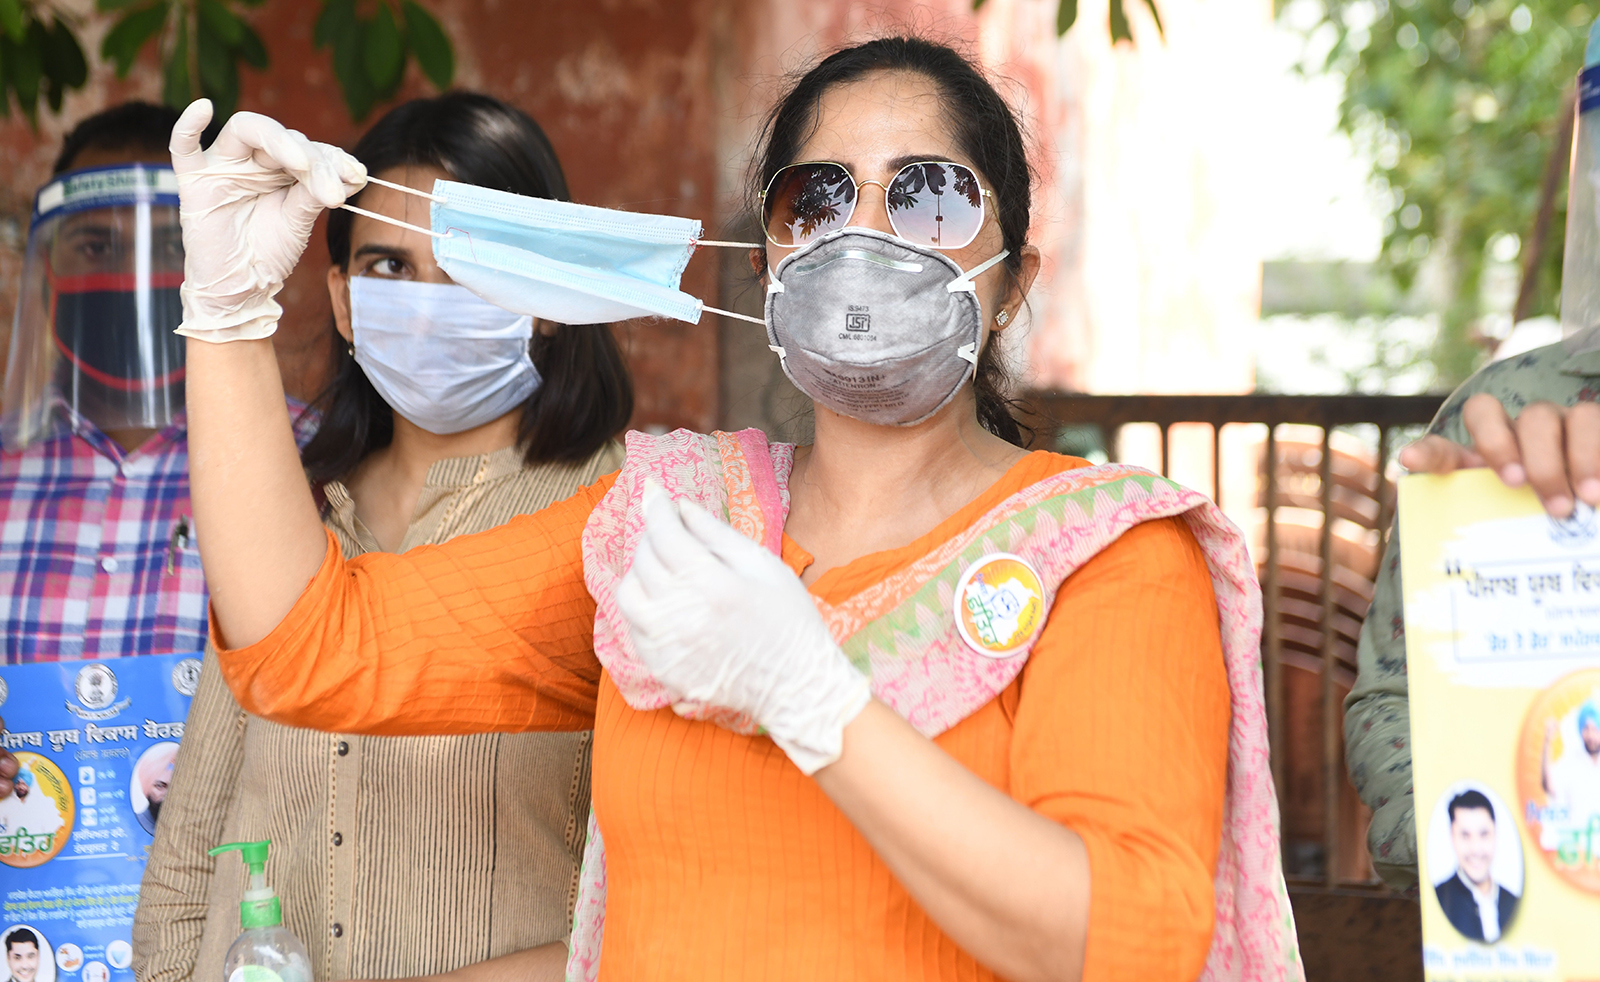 Members of Nehru Yuva Kendra and Punjab Youth Development Board shows to people how to use face masks in Amritsar, India on July 4.